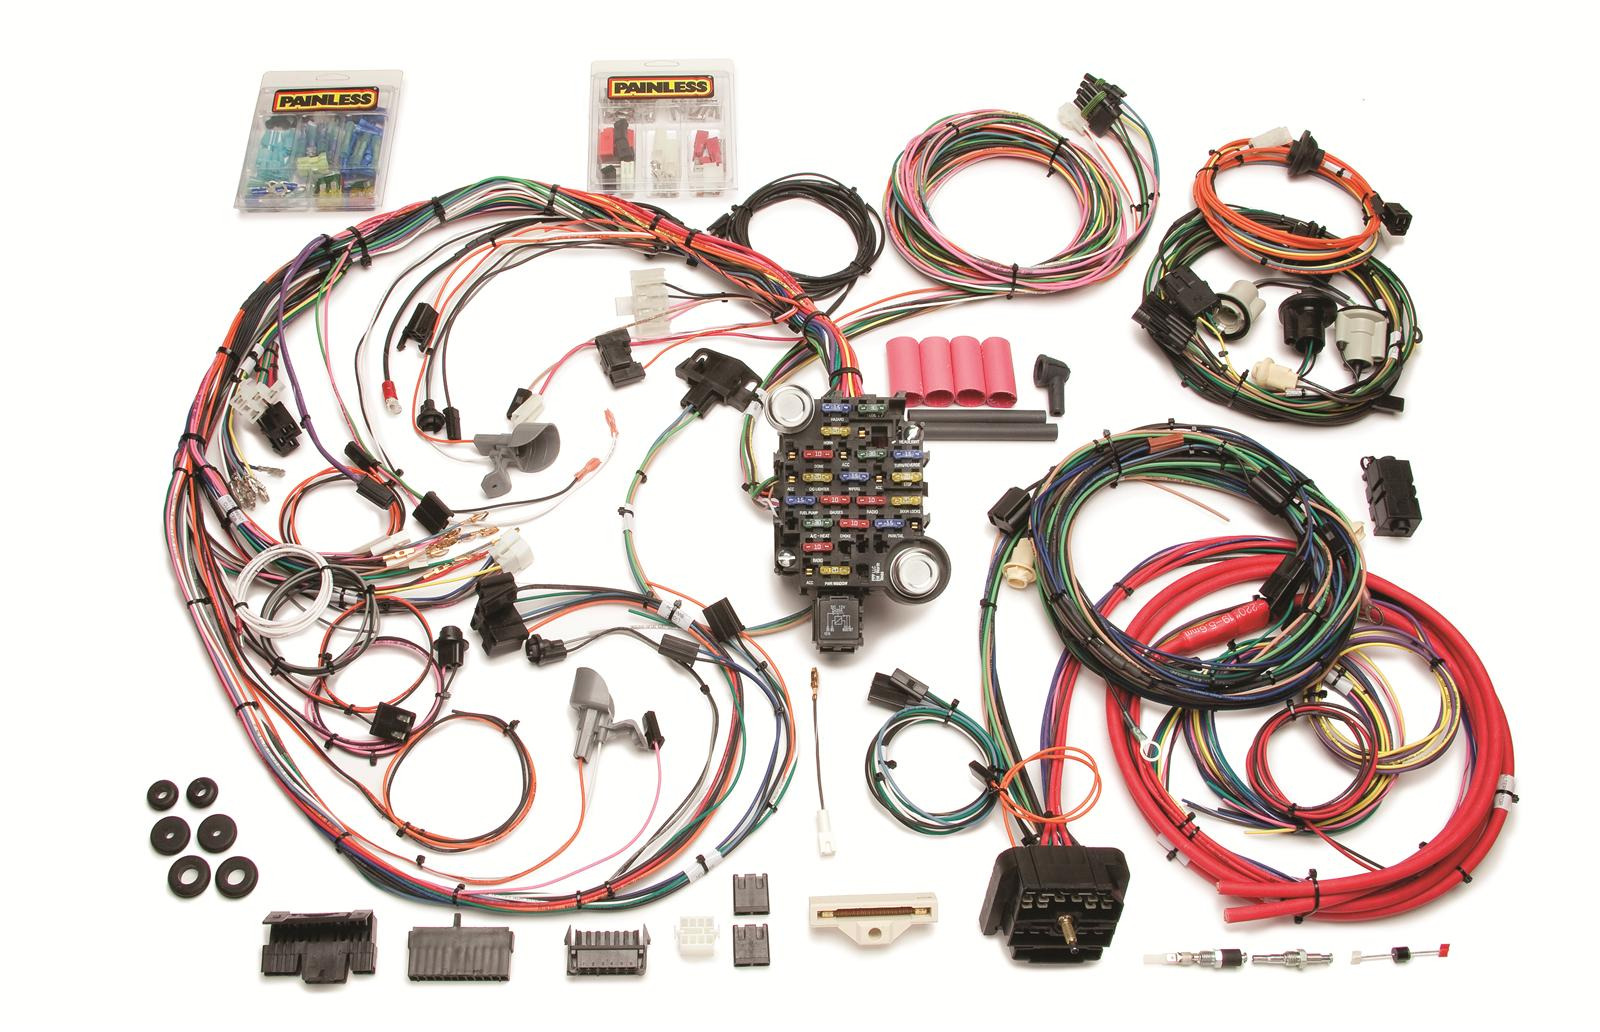 Painless Performance 26 Circuit 1970 73 Direct Fit Camaro Harnesses Wiring Harness And Chassis 20112 Free Shipping On Orders Over 99 At Summit Racing